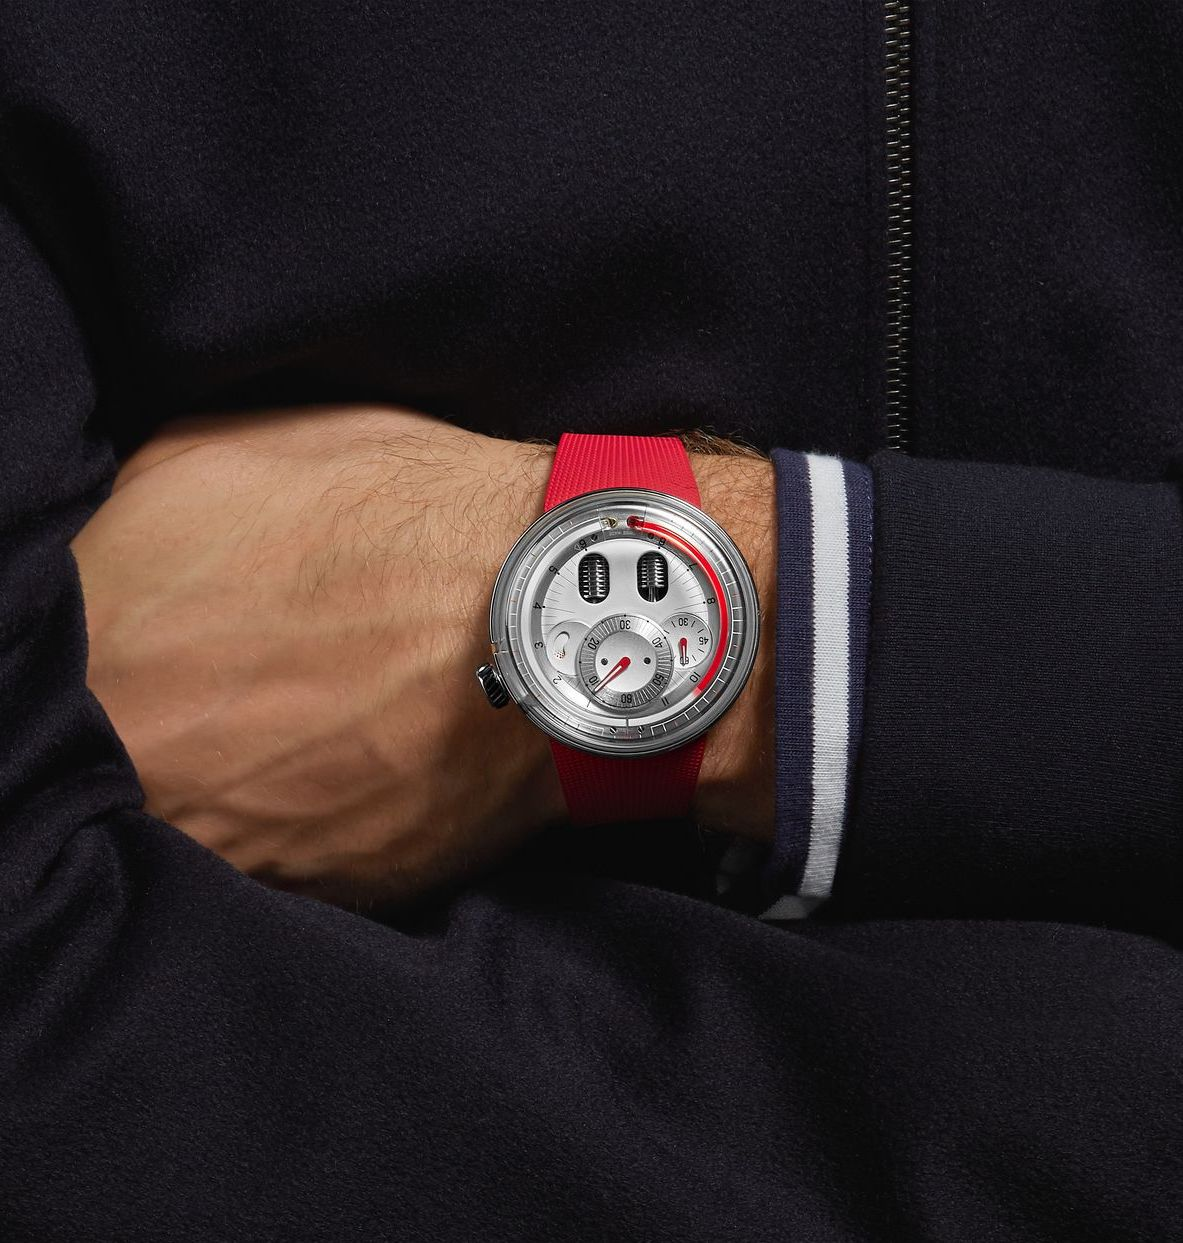 Watch brand HYT launches at men's style portal Mr Porter